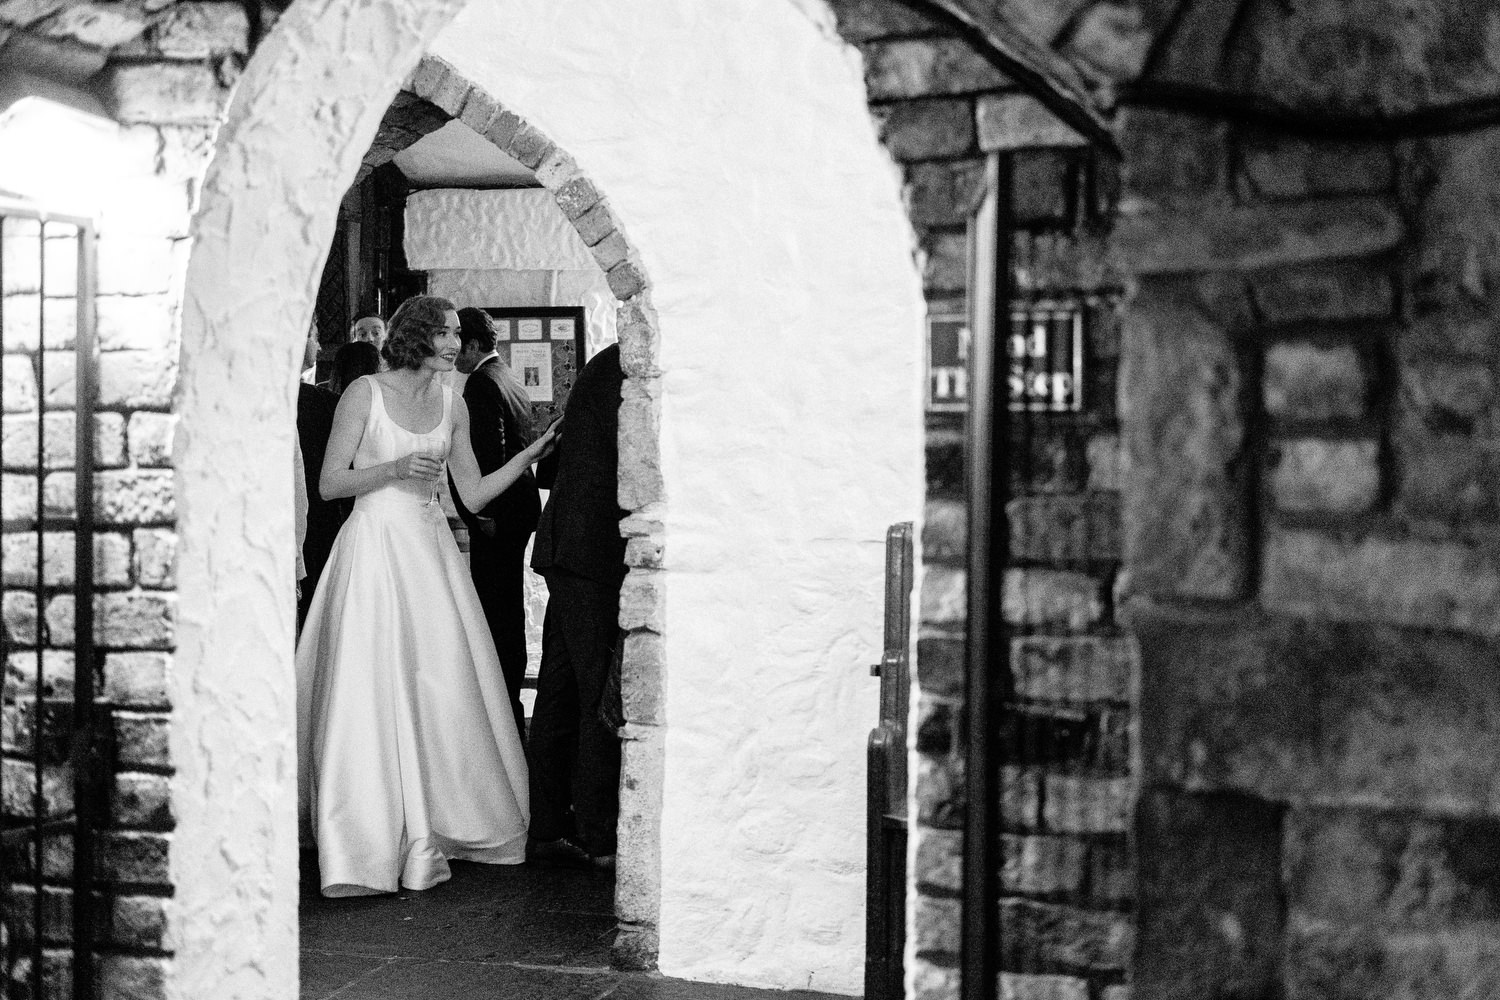 000000000000000000000194_bride_style_vintage_photography_david_mcclelland_ireland_castle_hollywood_kinnity_wedding_photographer_fujifilm